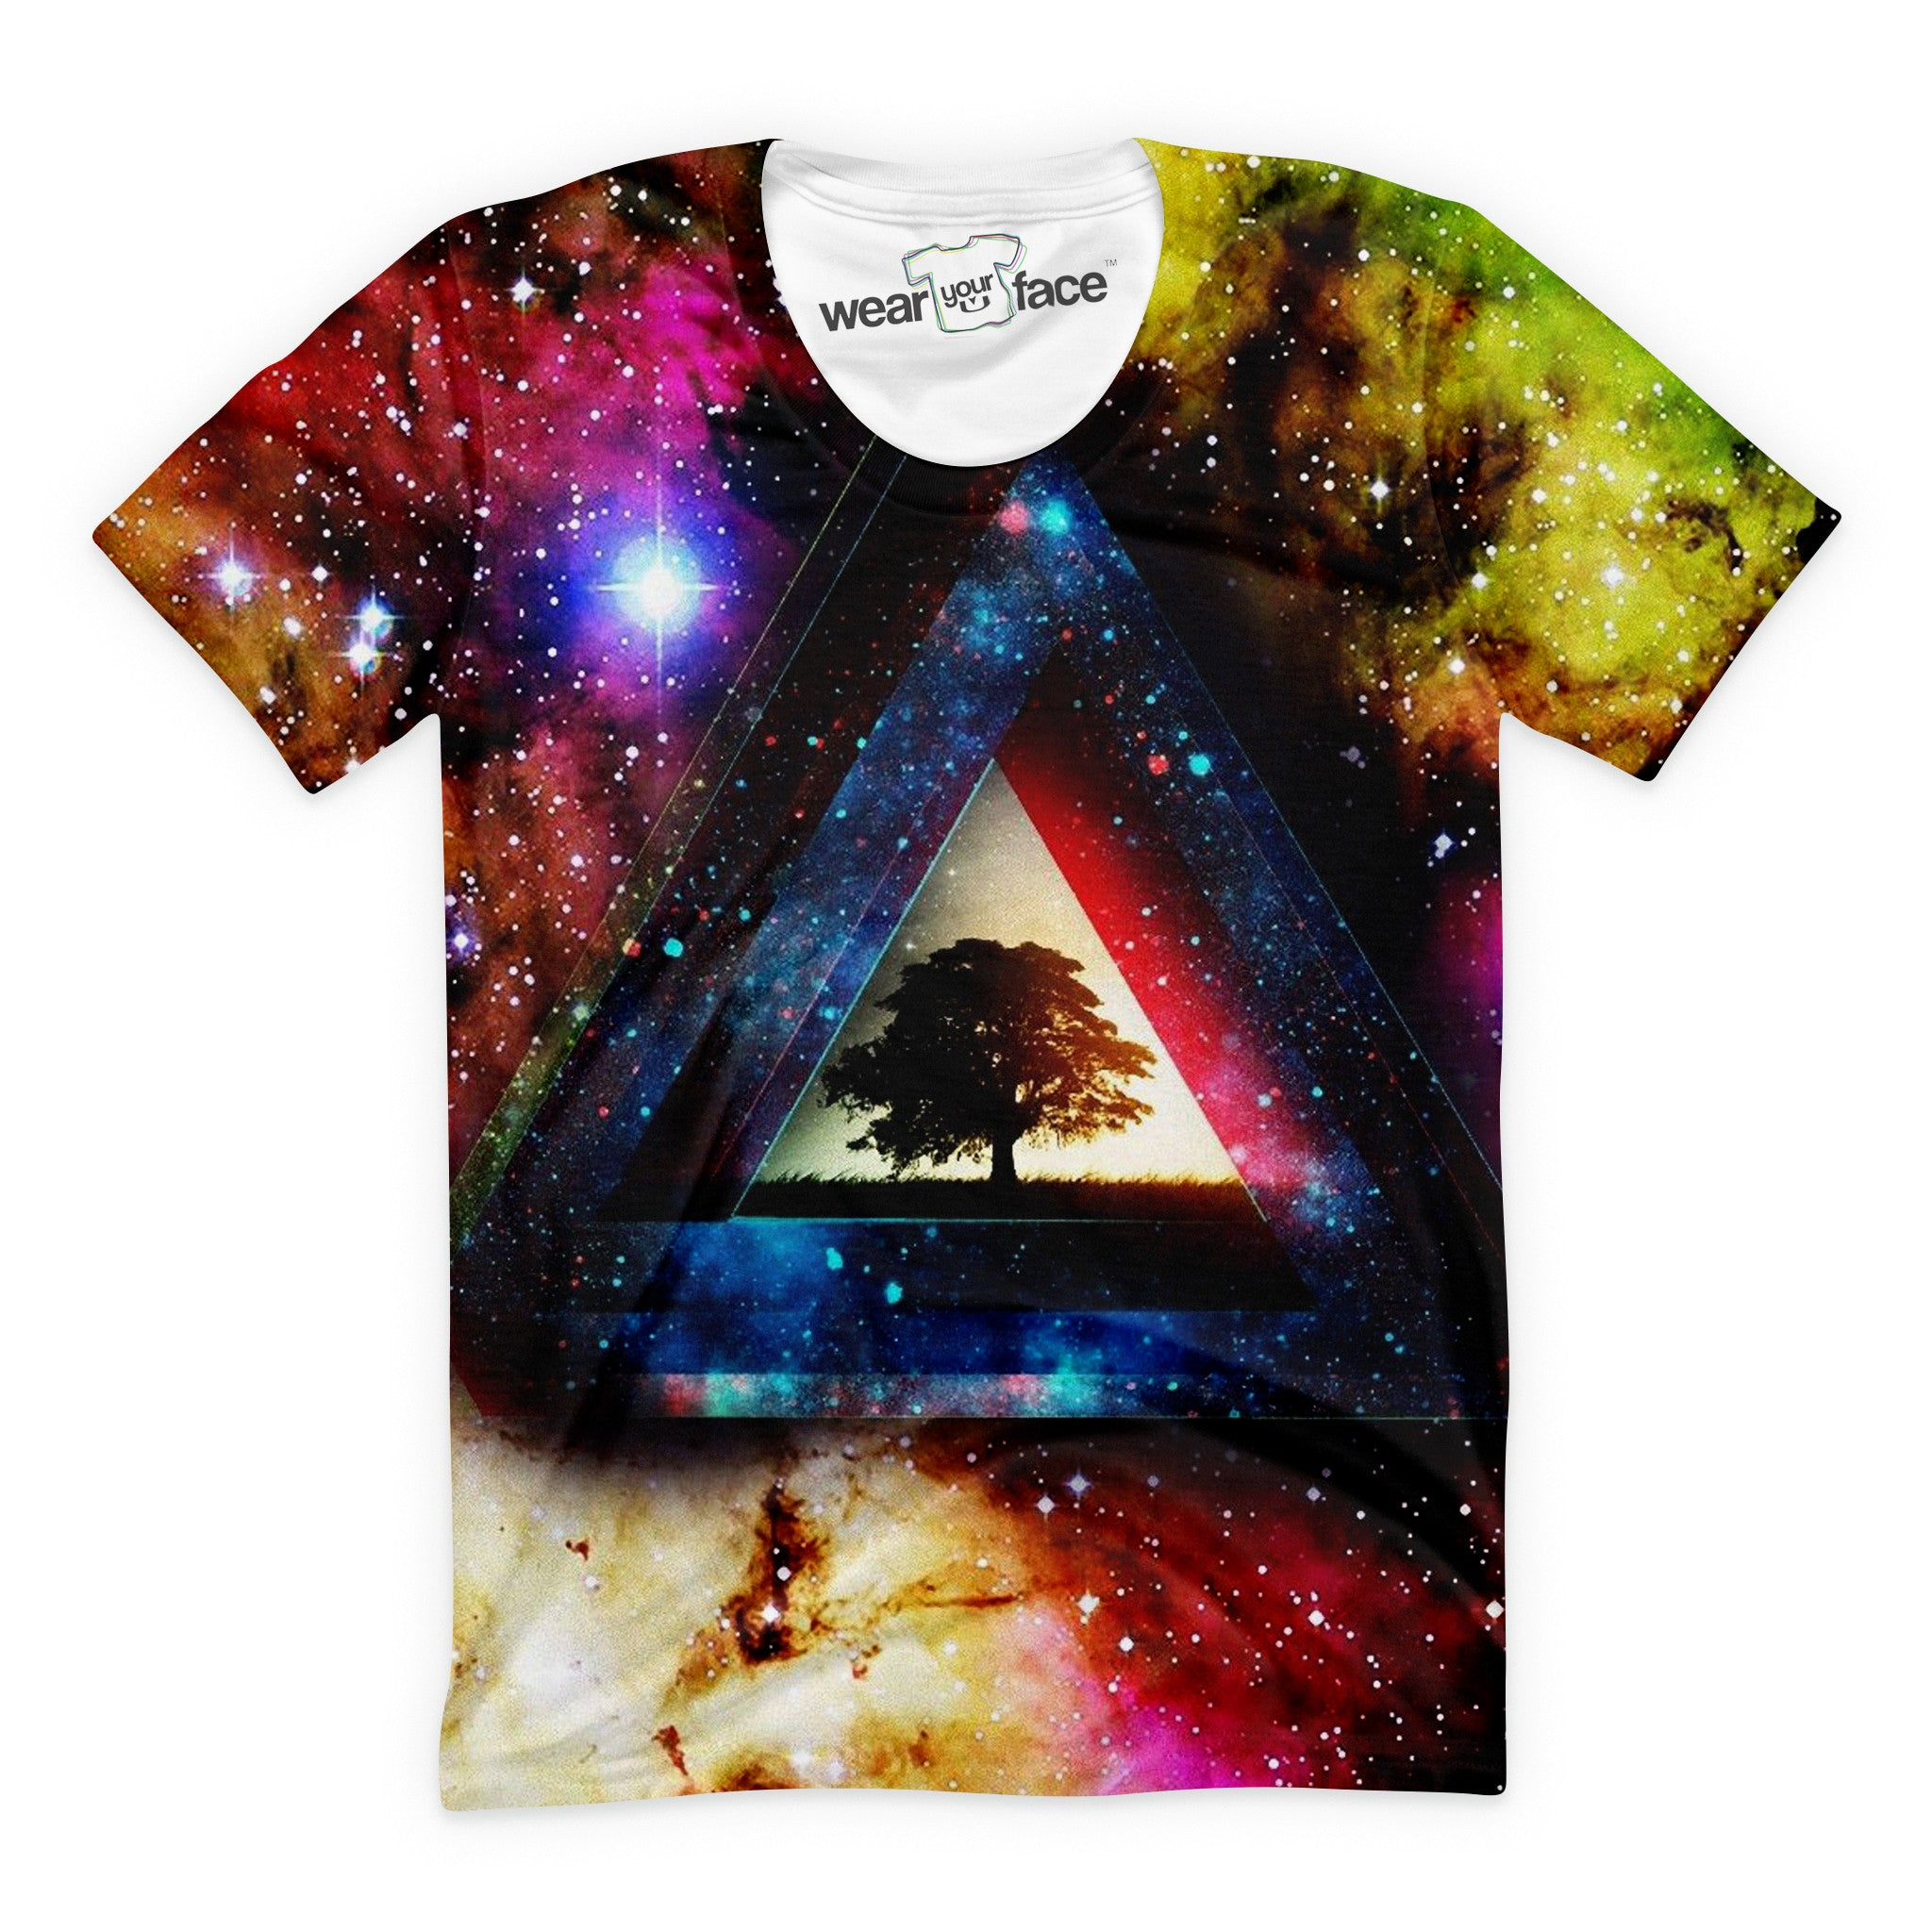 Intergalactic Pyramid T-Shirt